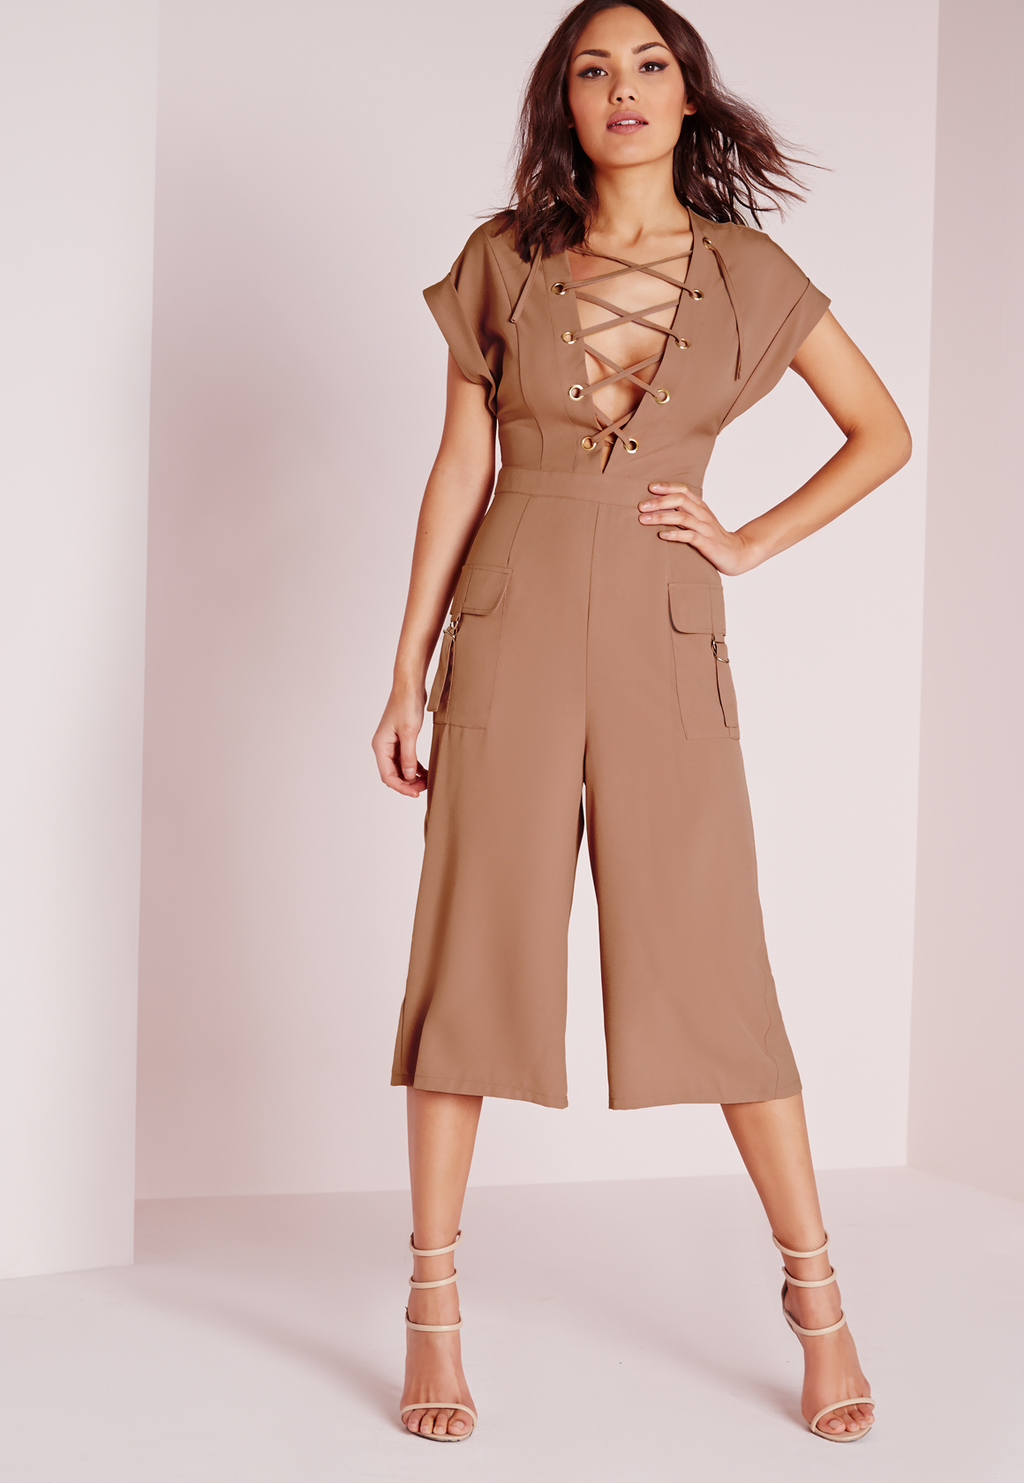 Lace Up Roll Sleeve Culotte Jumpsuit Blush, Beige - neckline: low v-neck; pattern: plain; predominant colour: camel; occasions: evening; length: calf length; fit: body skimming; fibres: polyester/polyamide - stretch; sleeve length: short sleeve; sleeve style: standard; style: jumpsuit; pattern type: fabric; texture group: jersey - stretchy/drapey; season: s/s 2016; wardrobe: event